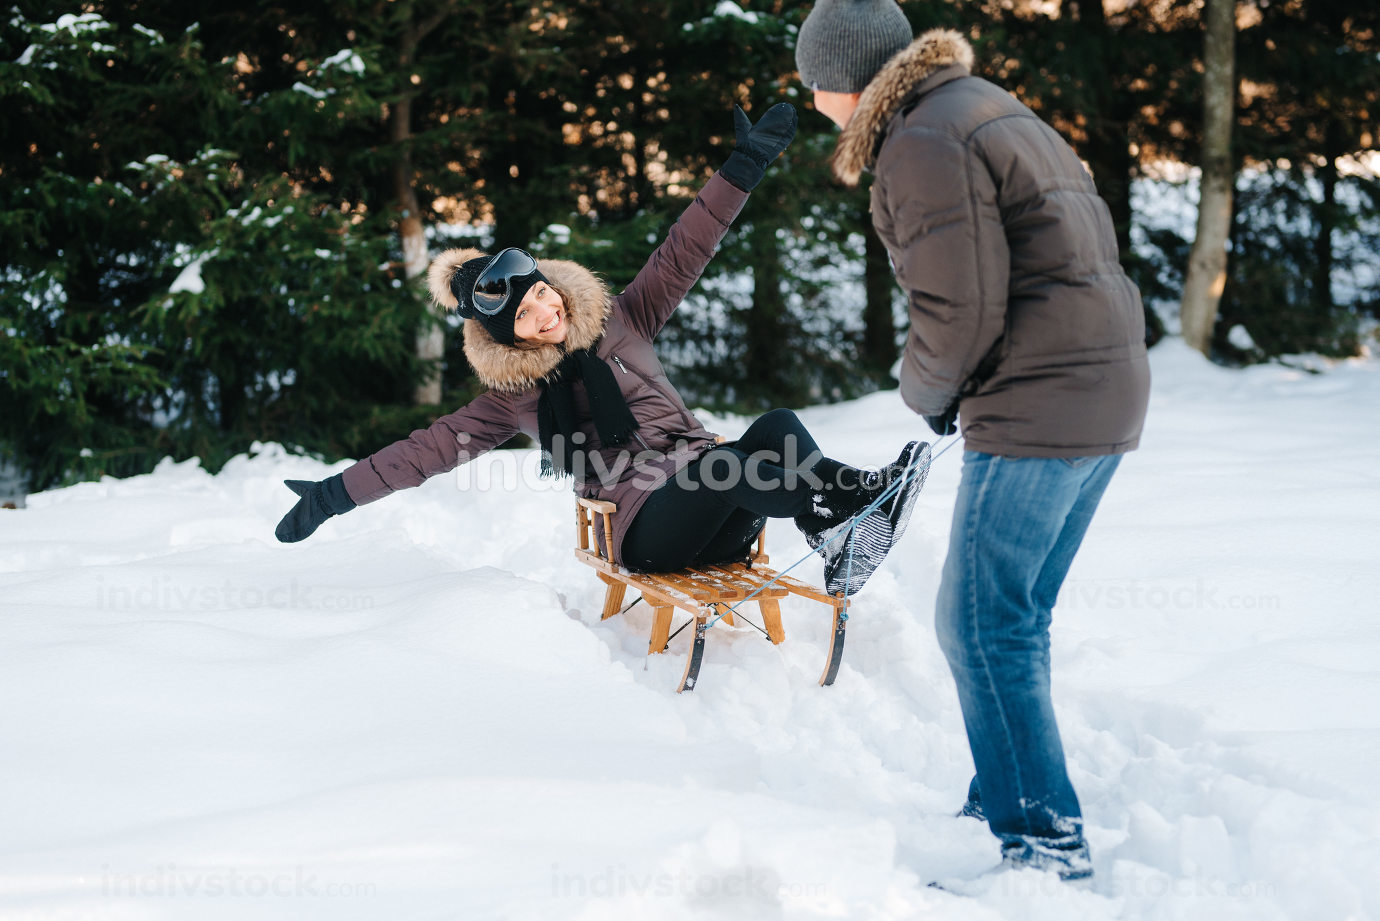 boy and girl outdoors on a winter walk playing snowballs